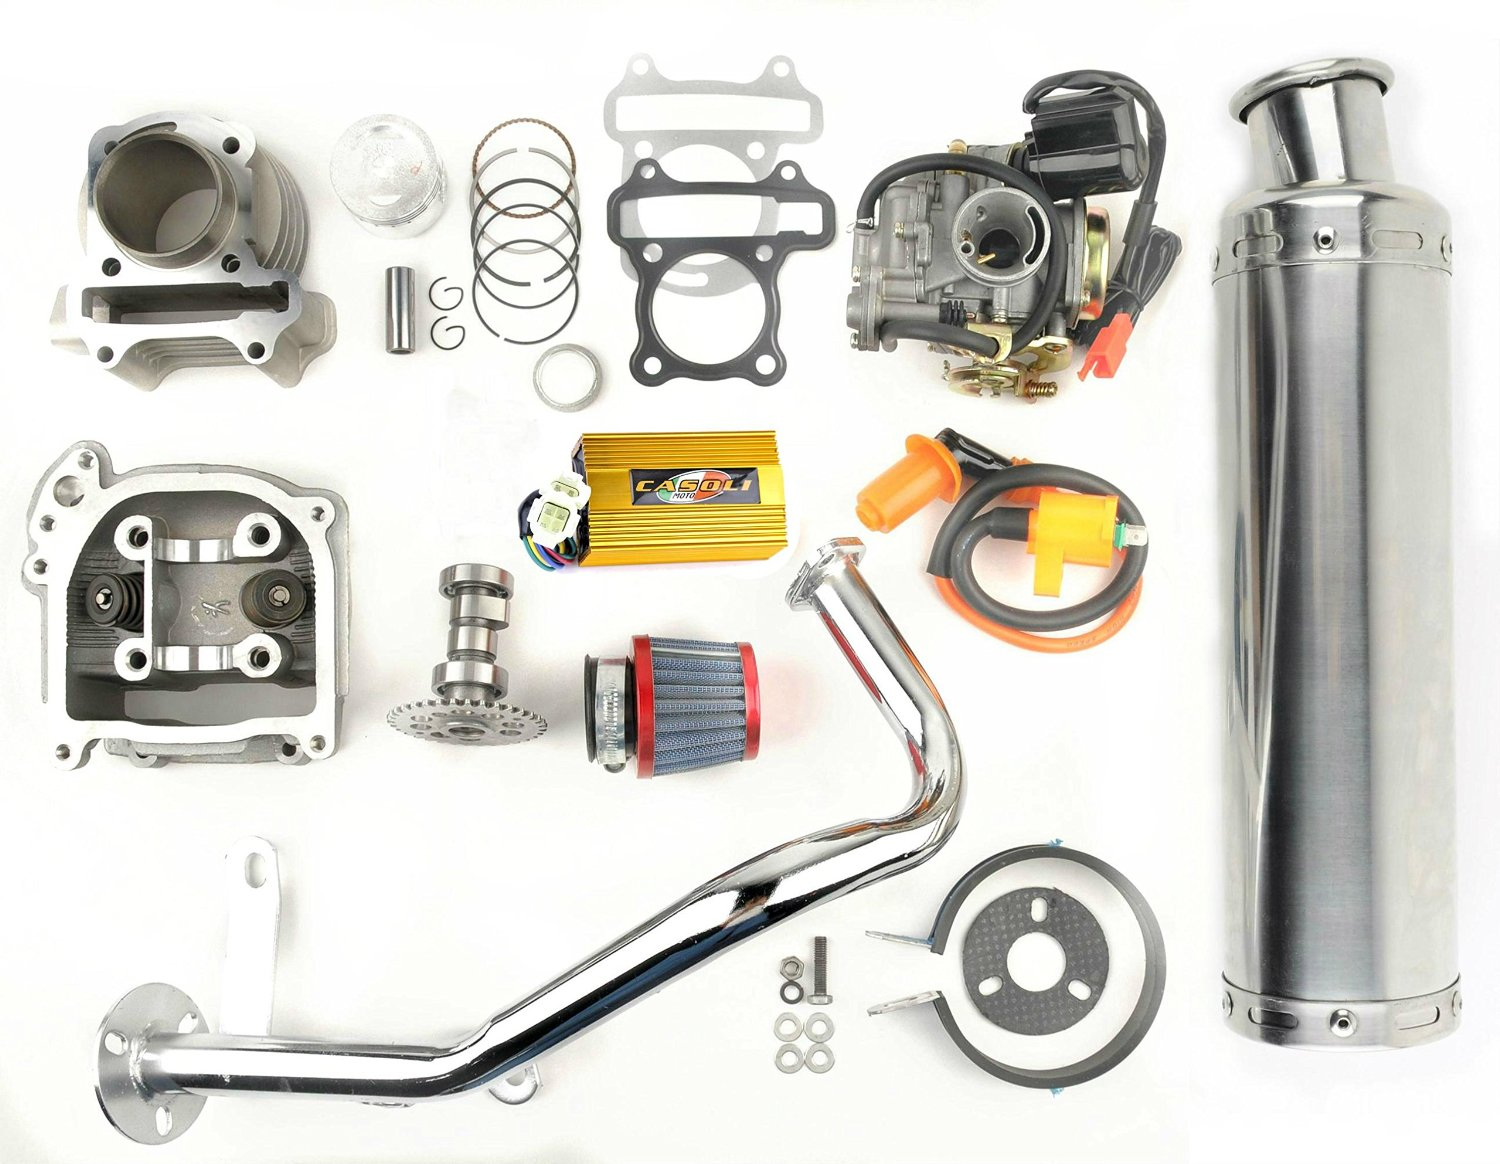 Cheap Big Bore Exhaust, find Big Bore Exhaust deals on line